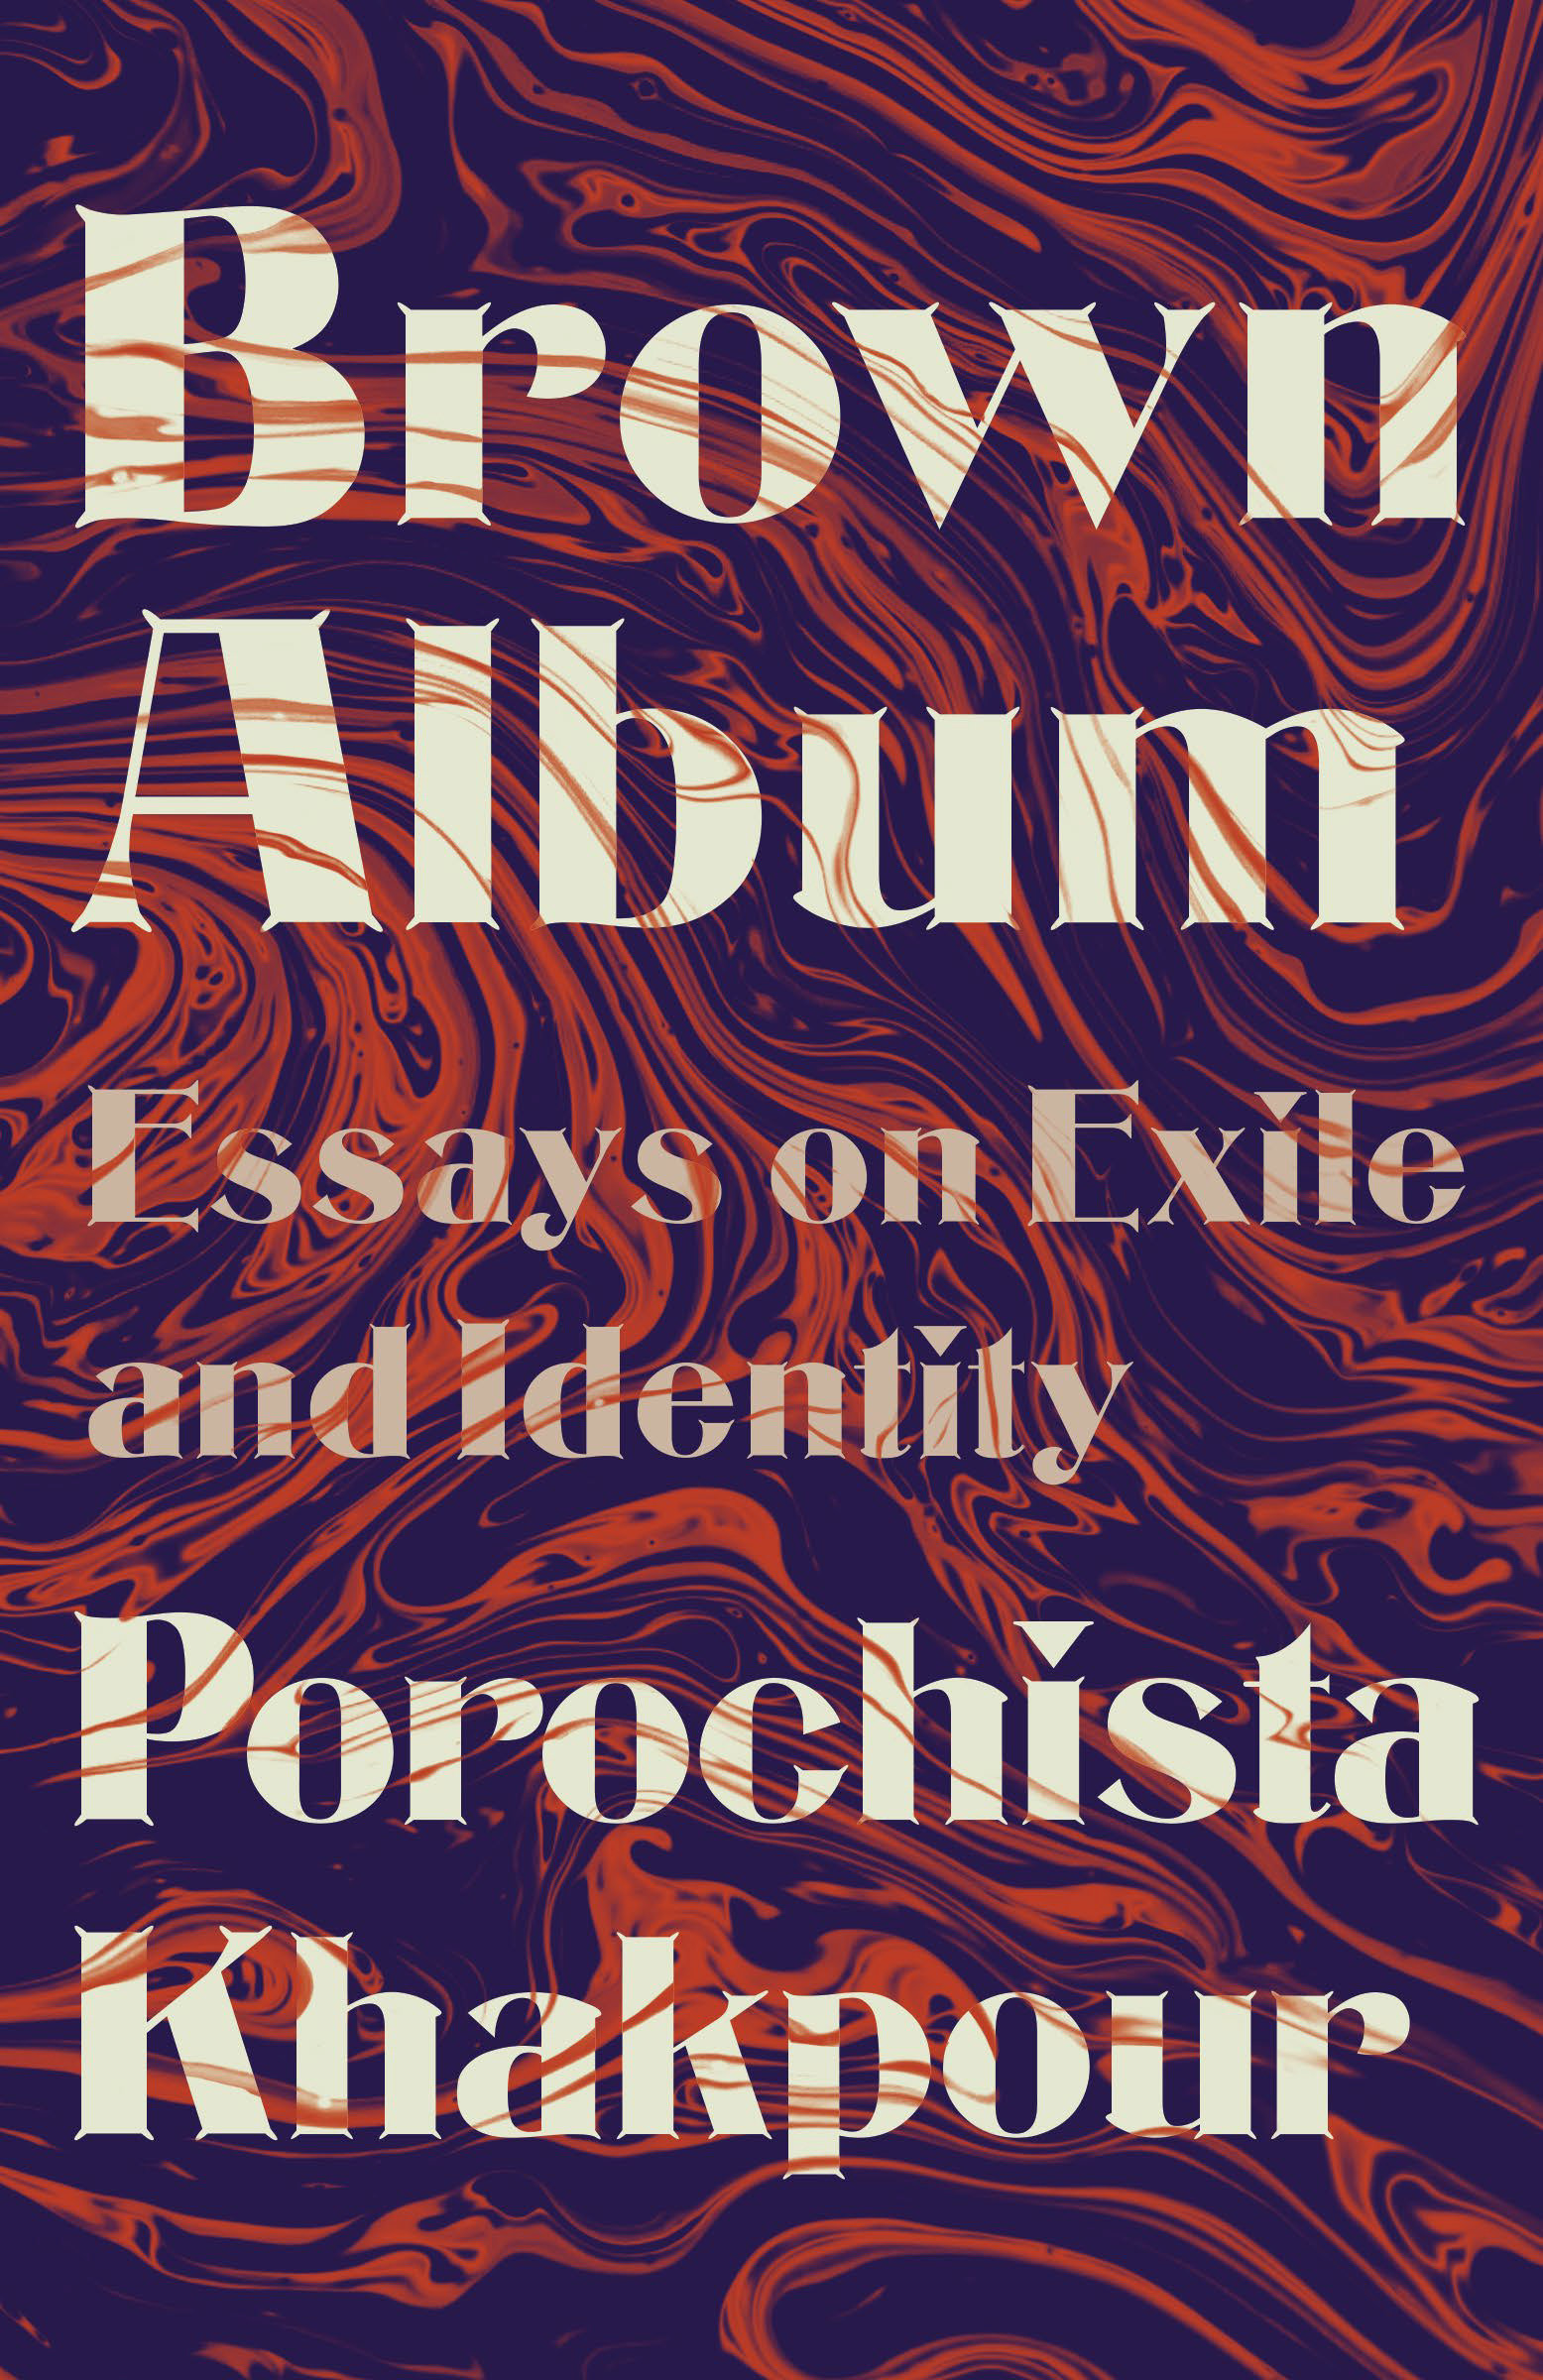 Brown Album Essays on Exile and Identity